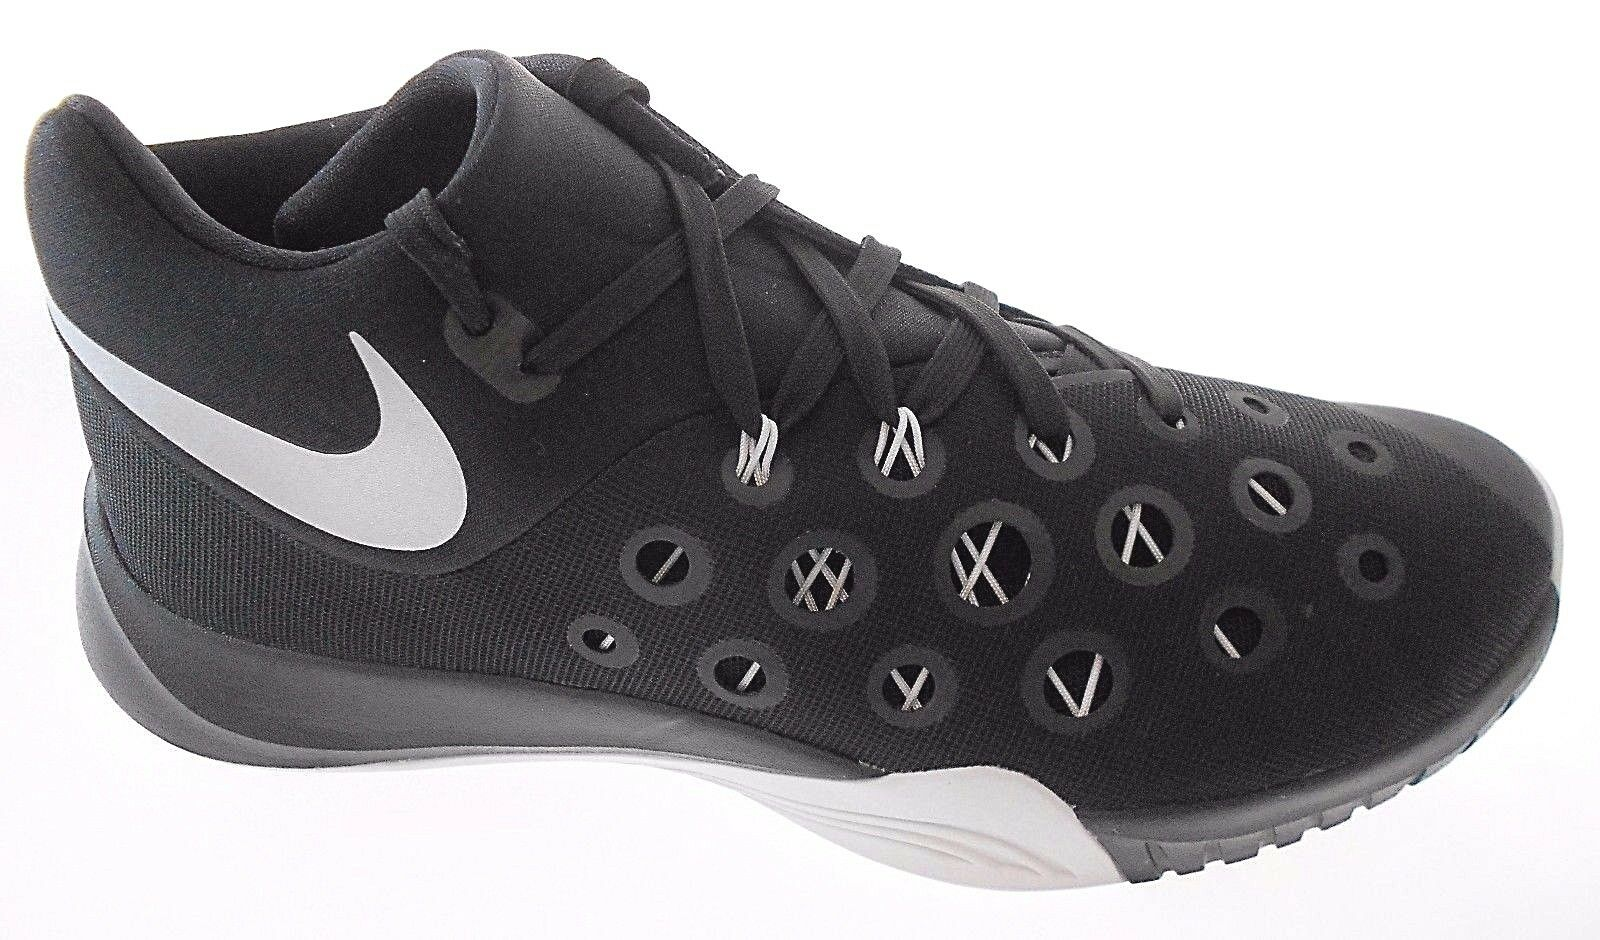 New shoes for men and women, limited time discount NIKE ZM HYPERQUICKNESS 2015 TB MEN'S BLACK BASKETBALL SHOES